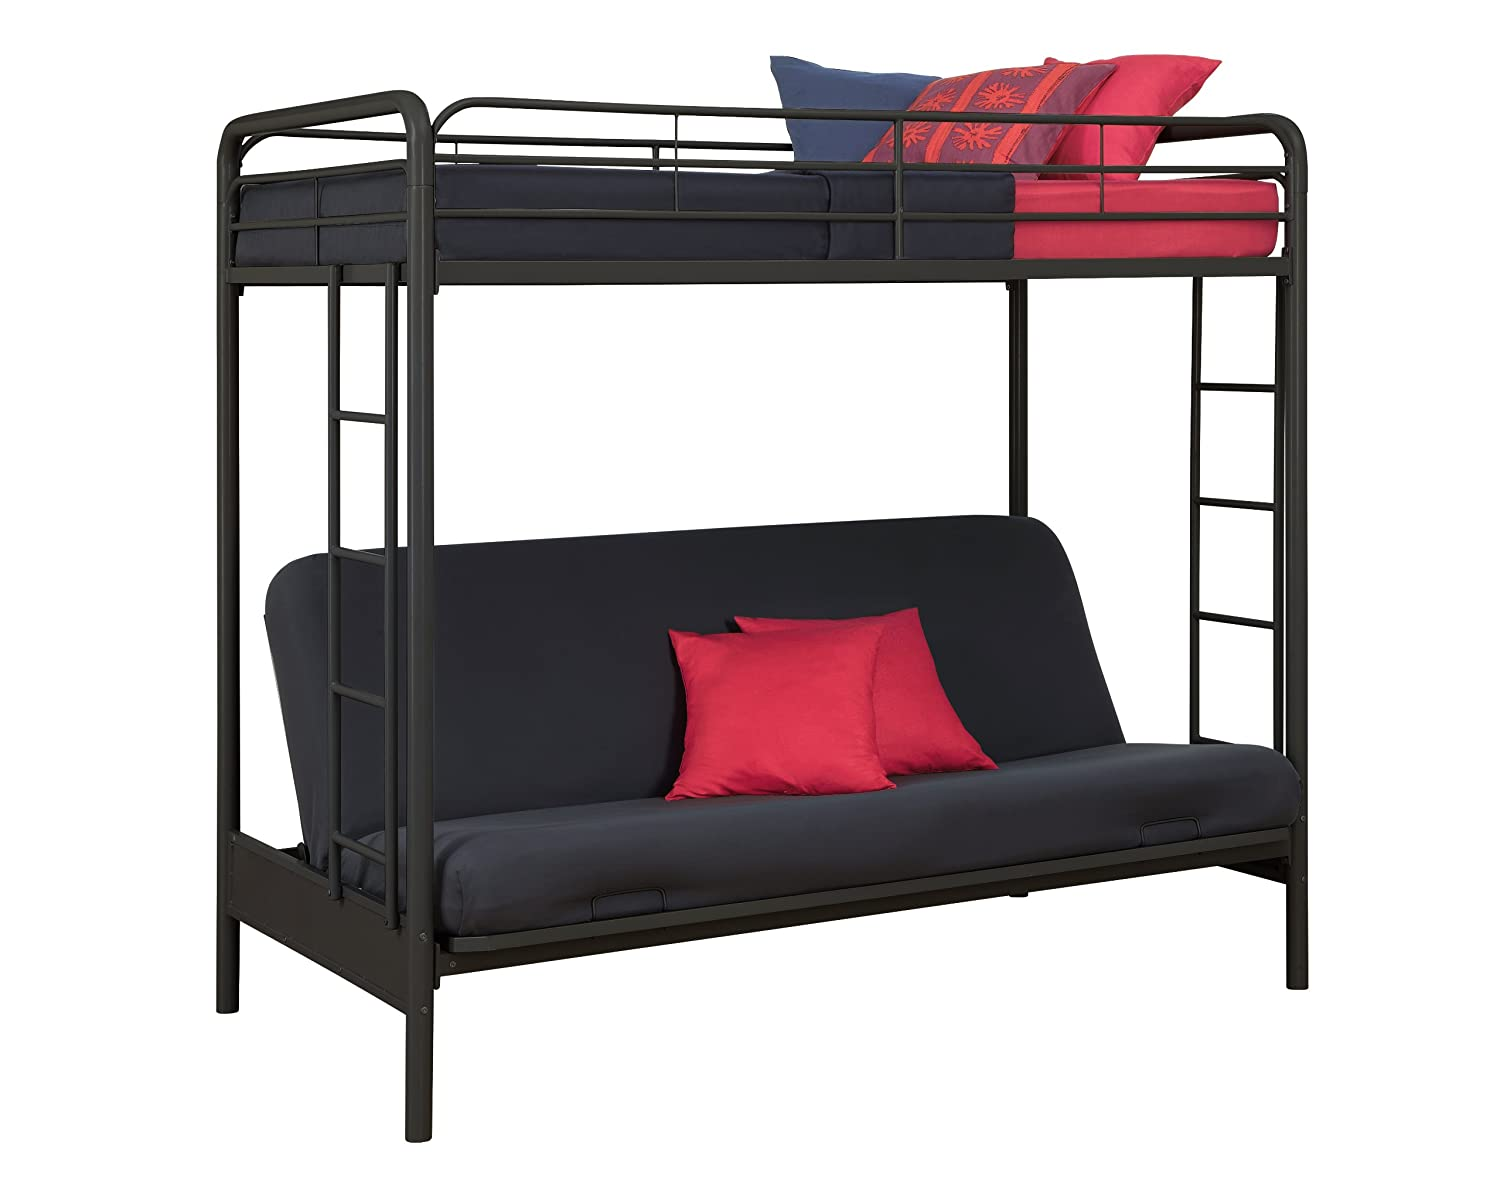 amazon    dorel home products twin over full futon bunk bed black  kitchen  u0026 dining amazon    dorel home products twin over full futon bunk bed      rh   amazon